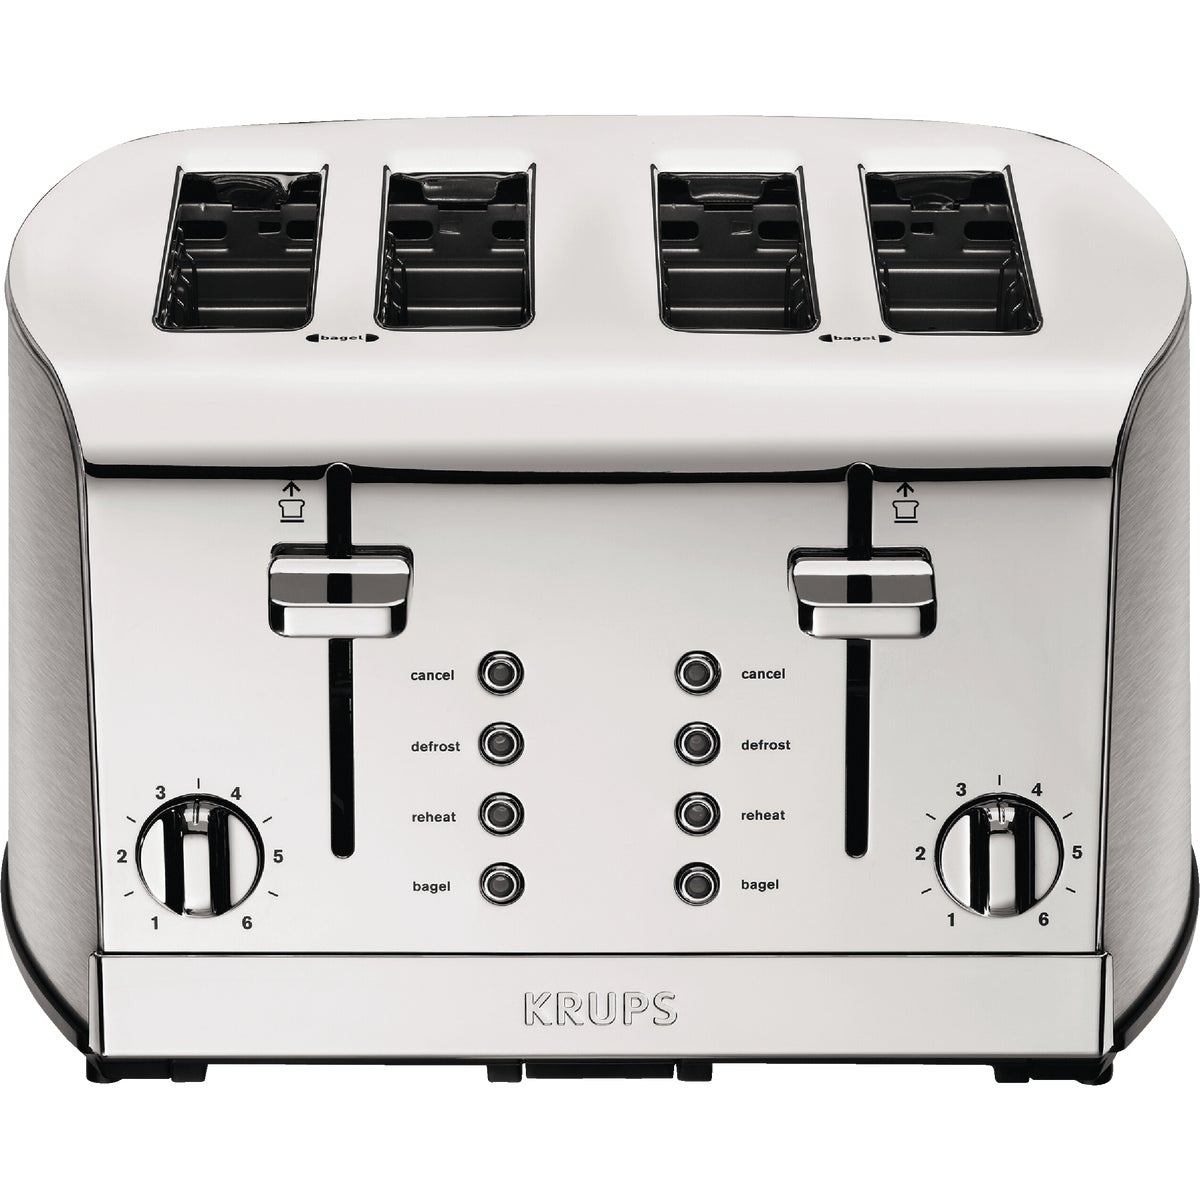 KRUPS KH734D Breakfast Set Toaster with Brushed and Chrome Stainless Steel Ho...